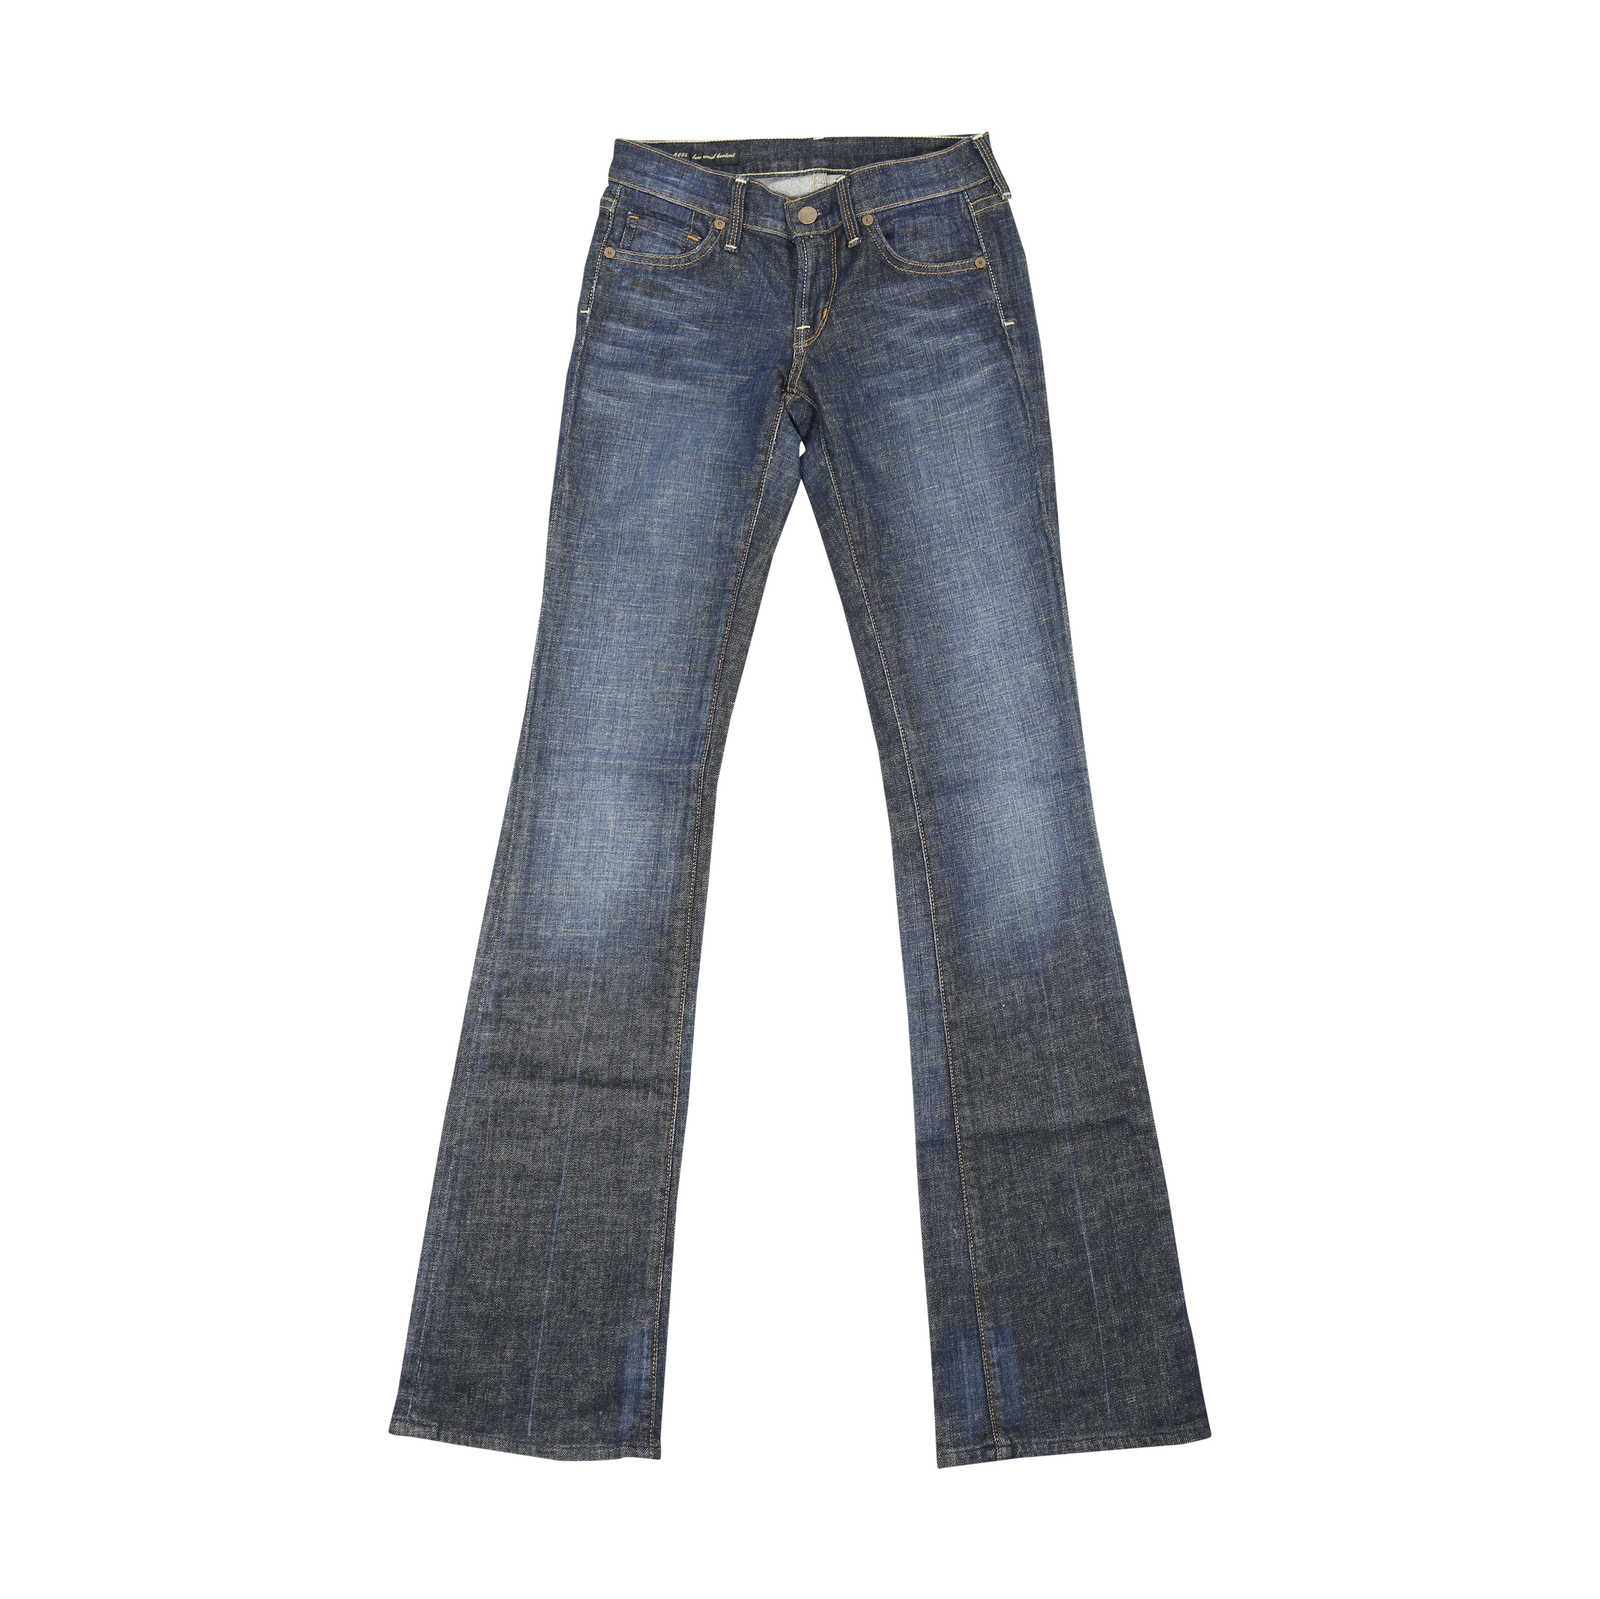 These flame resistant jeans from Ariat were designed for the working man. Featuring a boot cut leg opening, low-rise waist, and no-rub comfort inseams, you'll be able to wear these CAT 2 rated FR jeans .